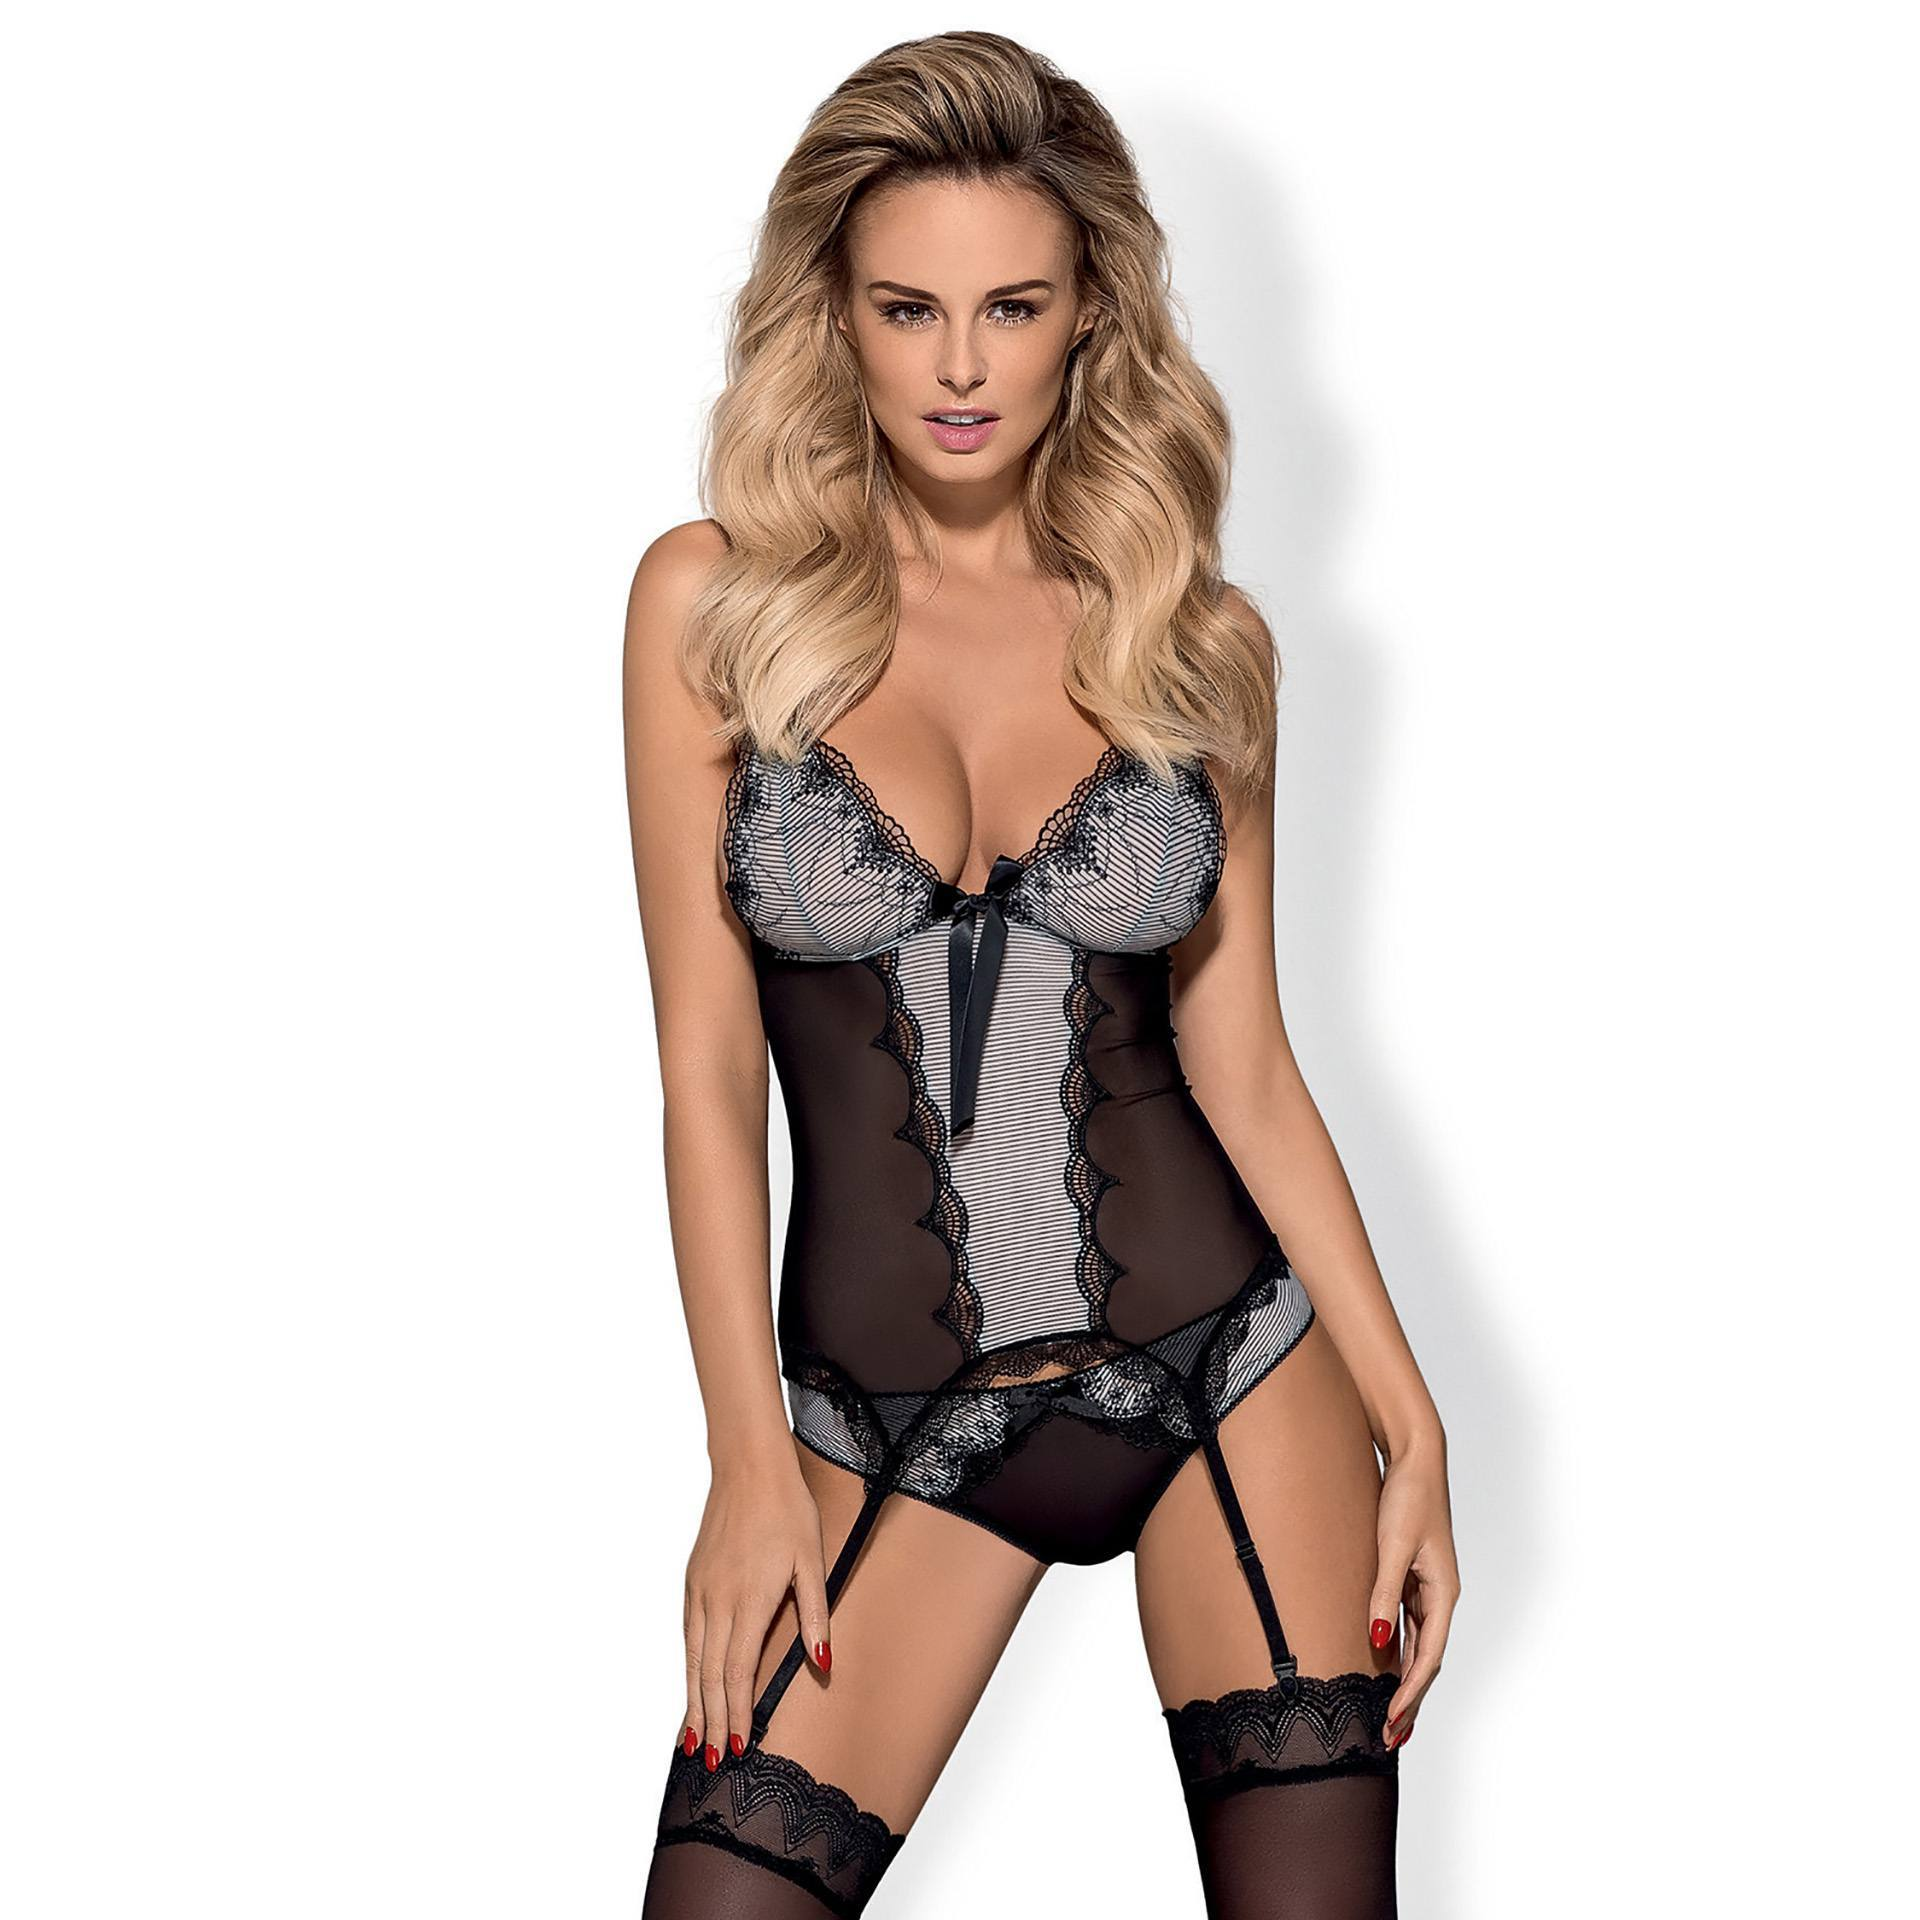 Rhian Sugden Hot In Lingerie